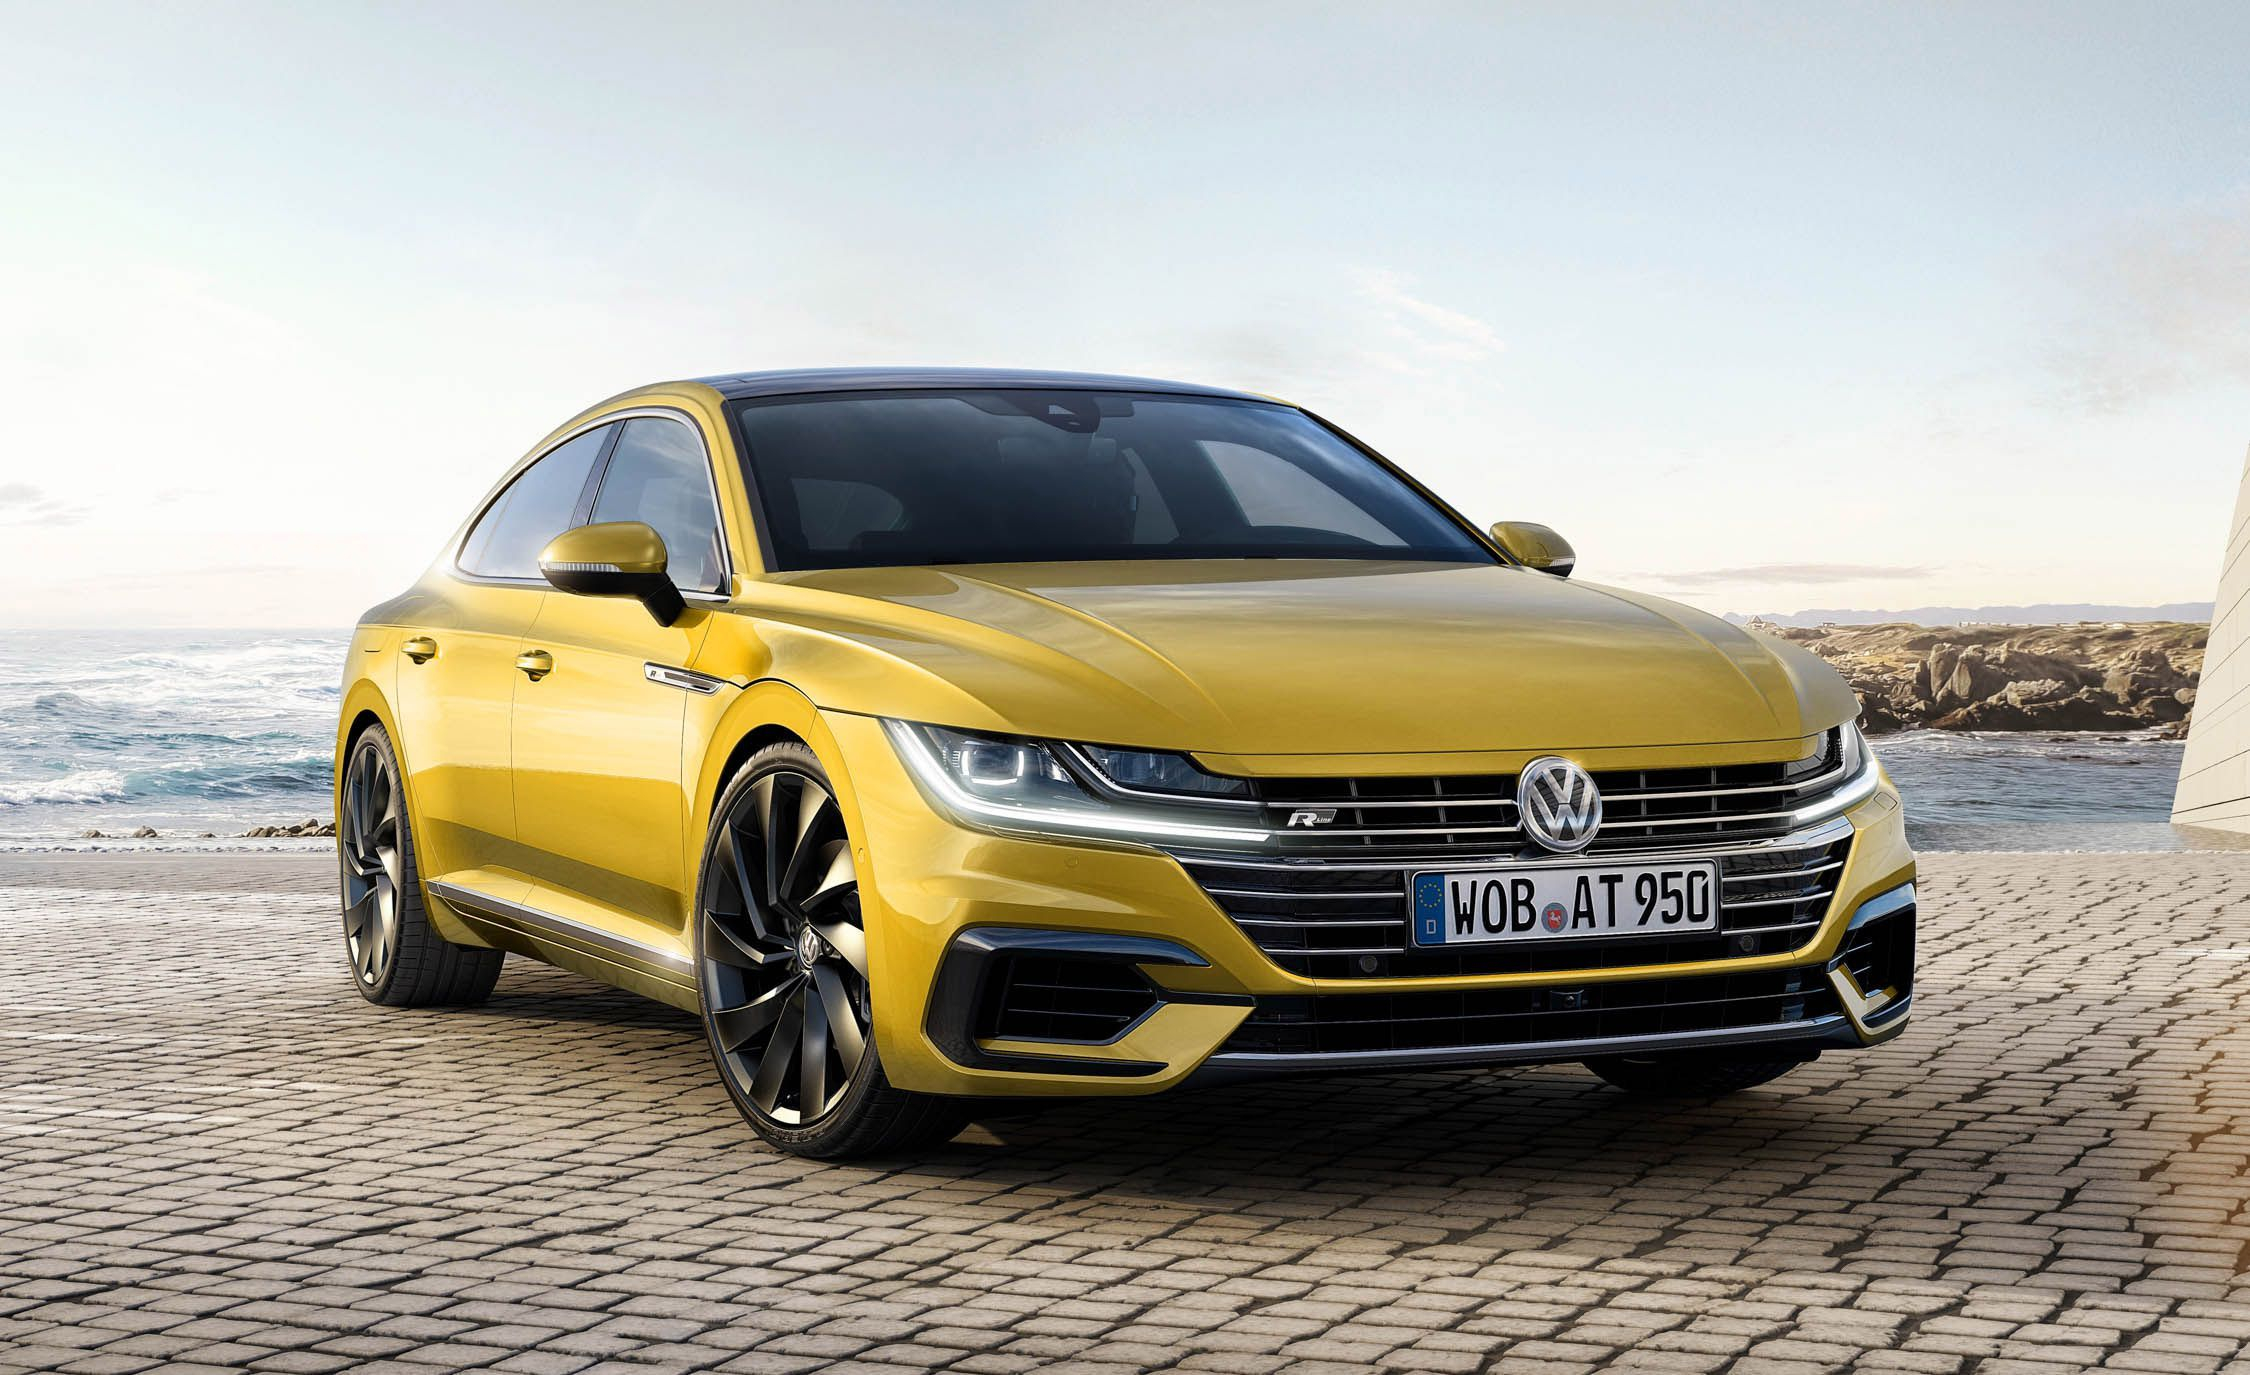 38 The Next Generation Vw Cc Engine